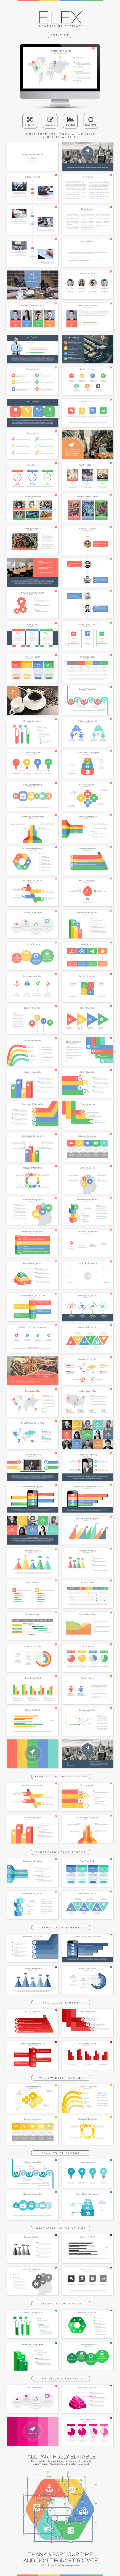 GraphicRiver Elex Multipurpose PowerPoint Presentation Template 10677848